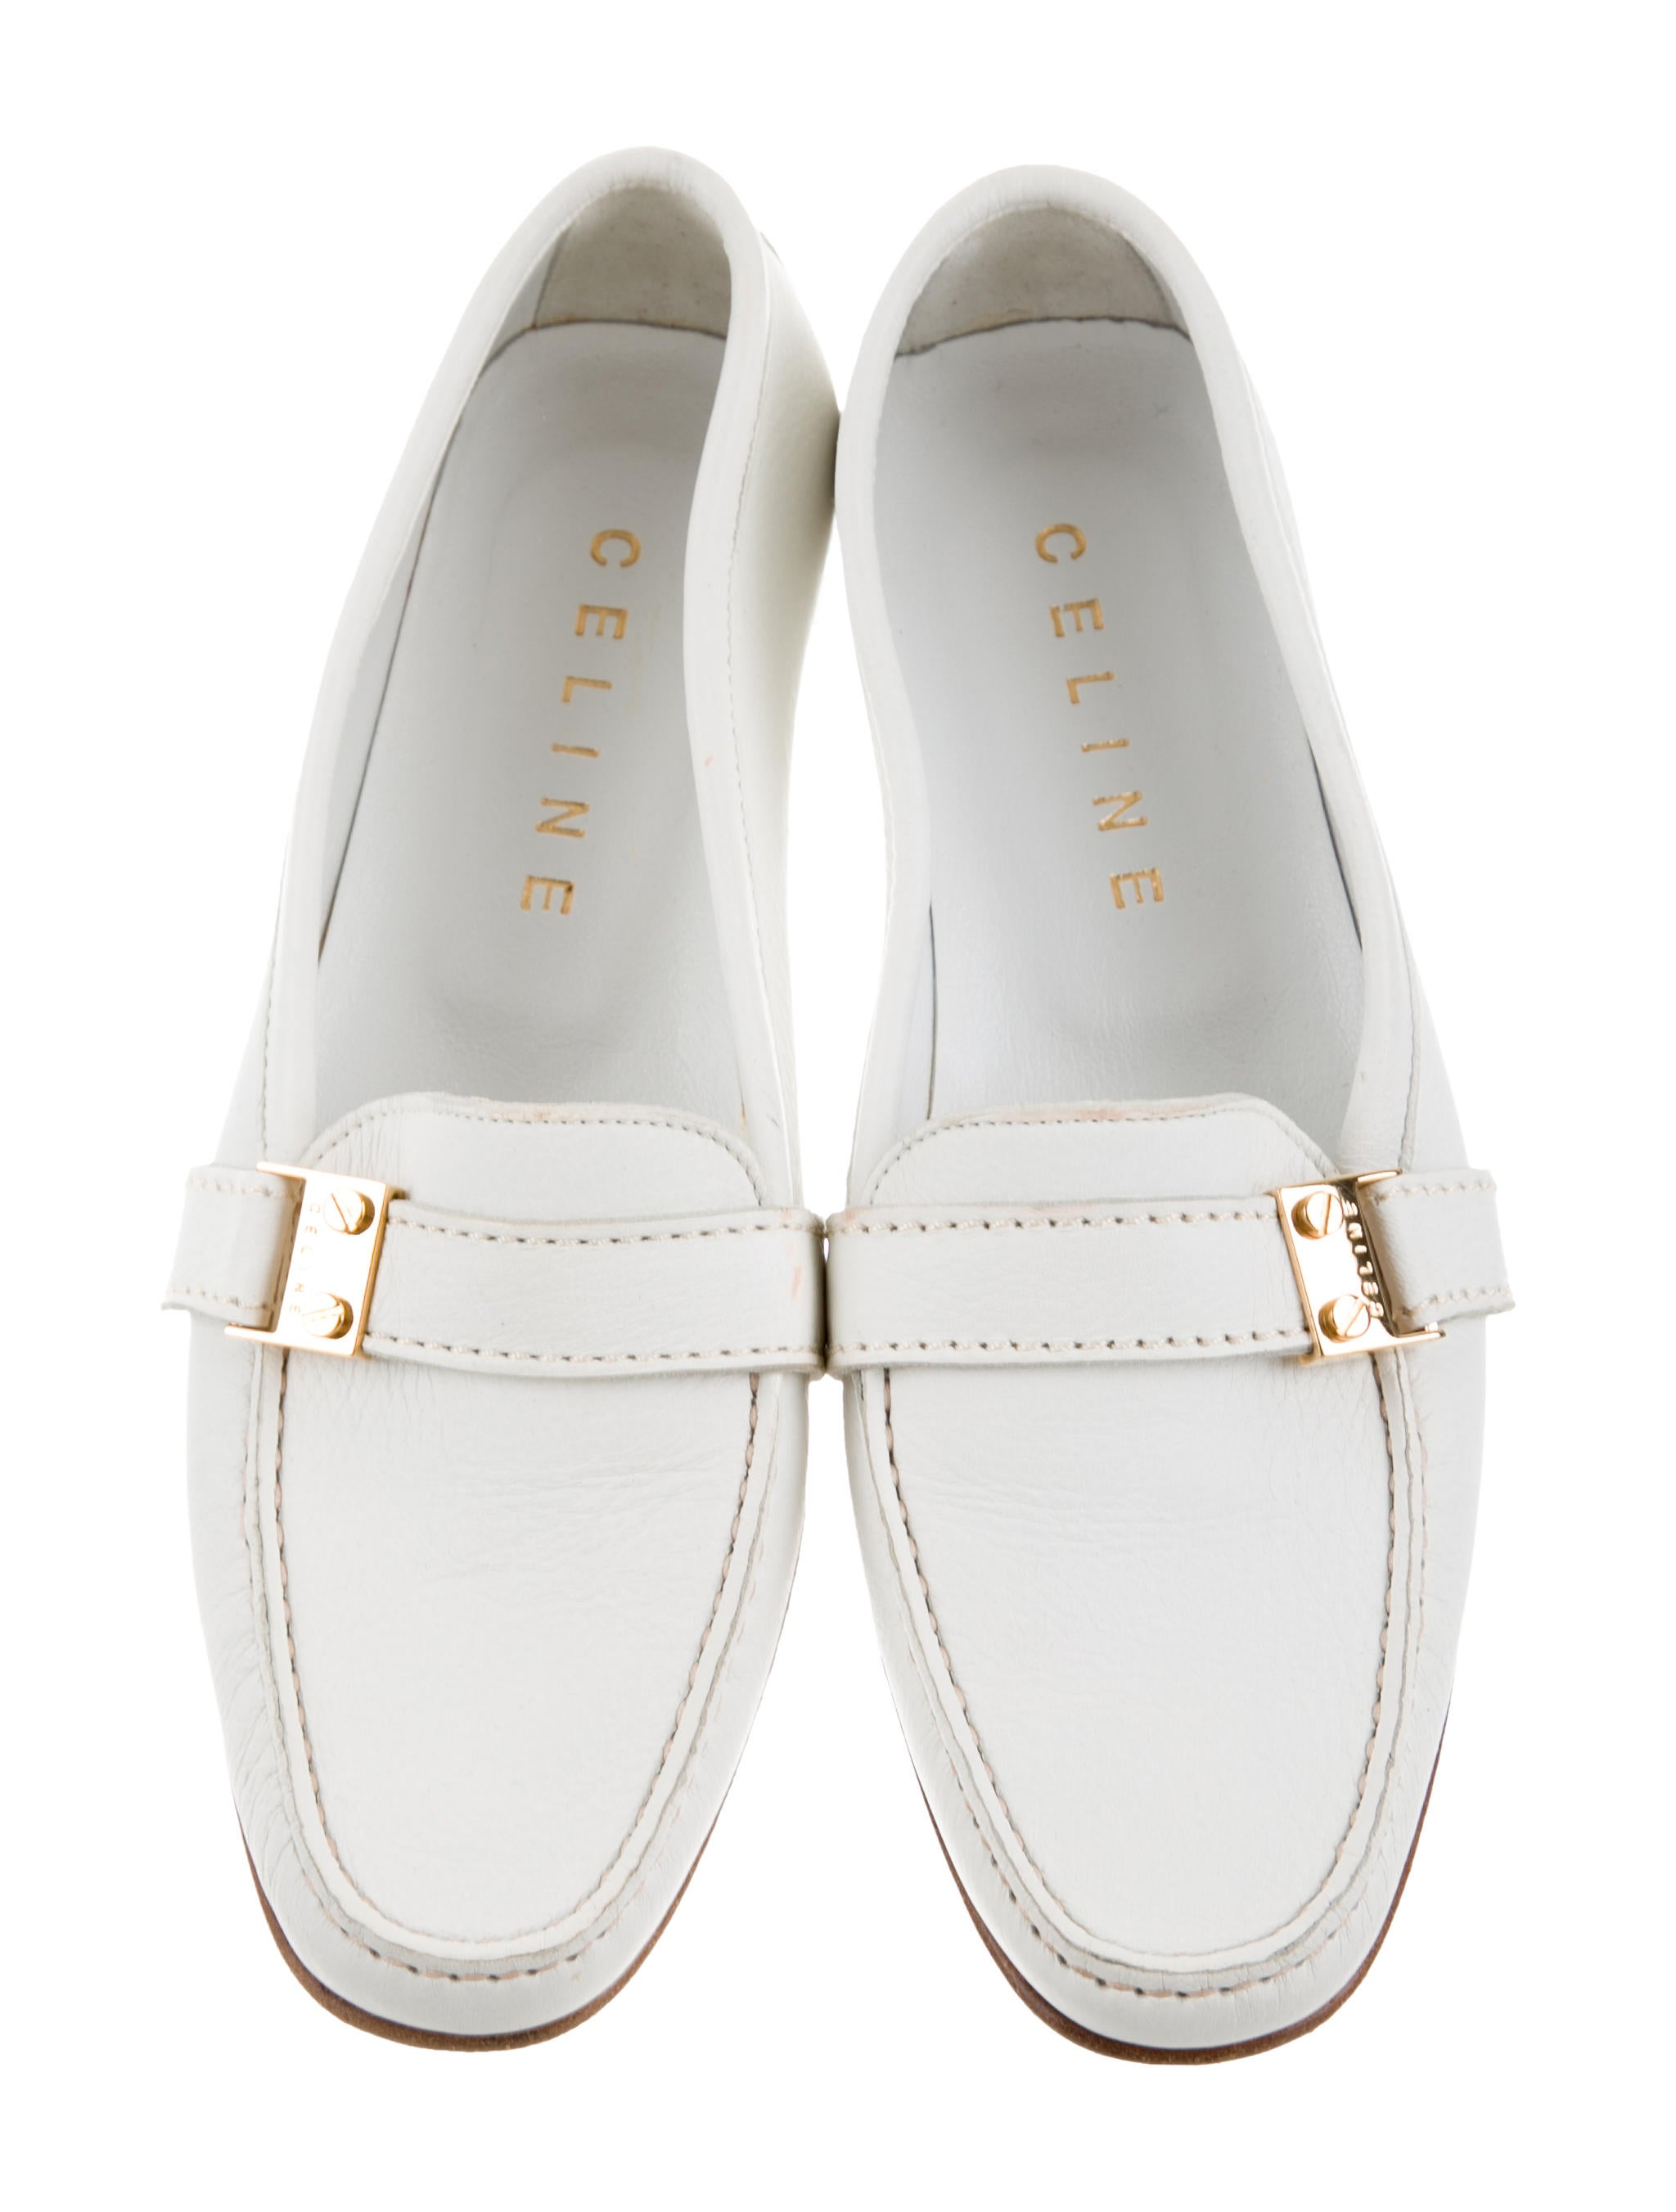 Céline Buckle-Accented Square Toe Loafers supply for sale wholesale price online huge surprise sale online visit sale online looking for cheap online 9K0Ivhw